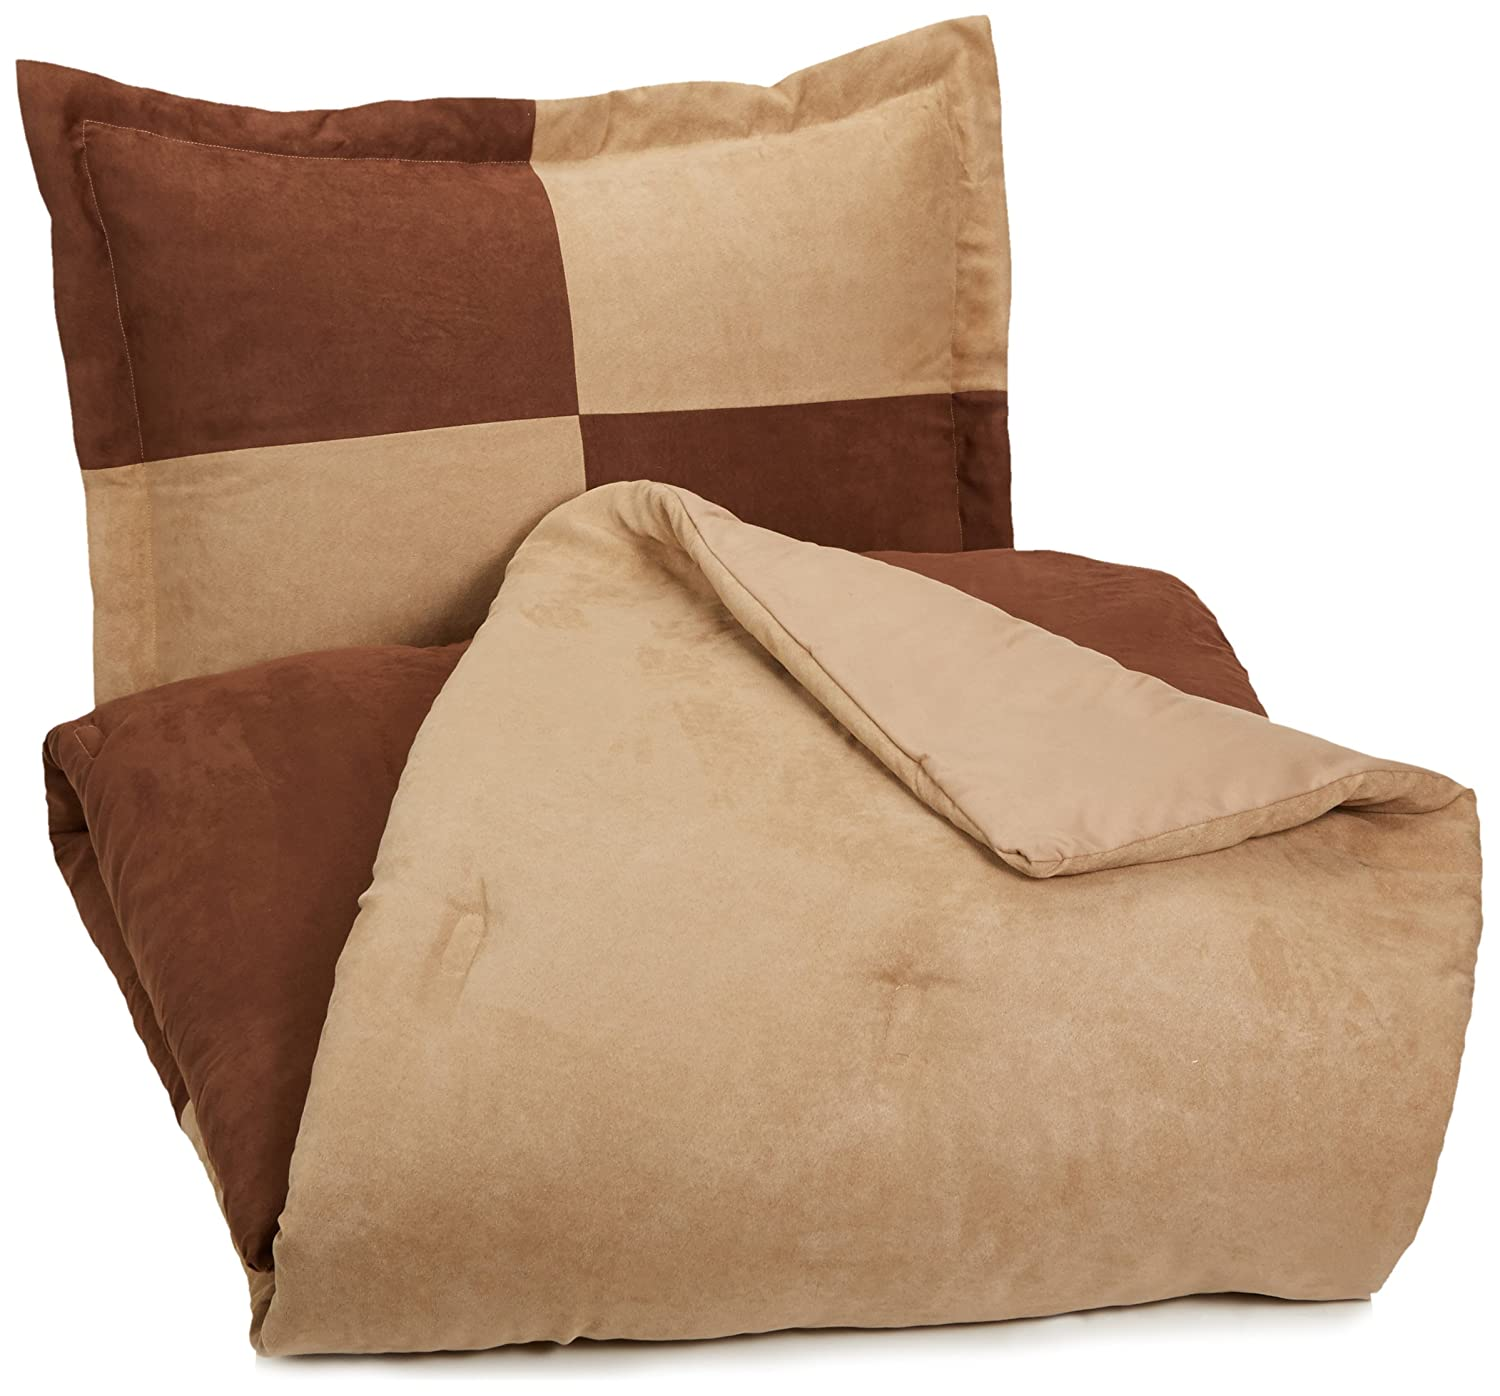 Tone Microsuede Comforter Set - Twin, Chocolate